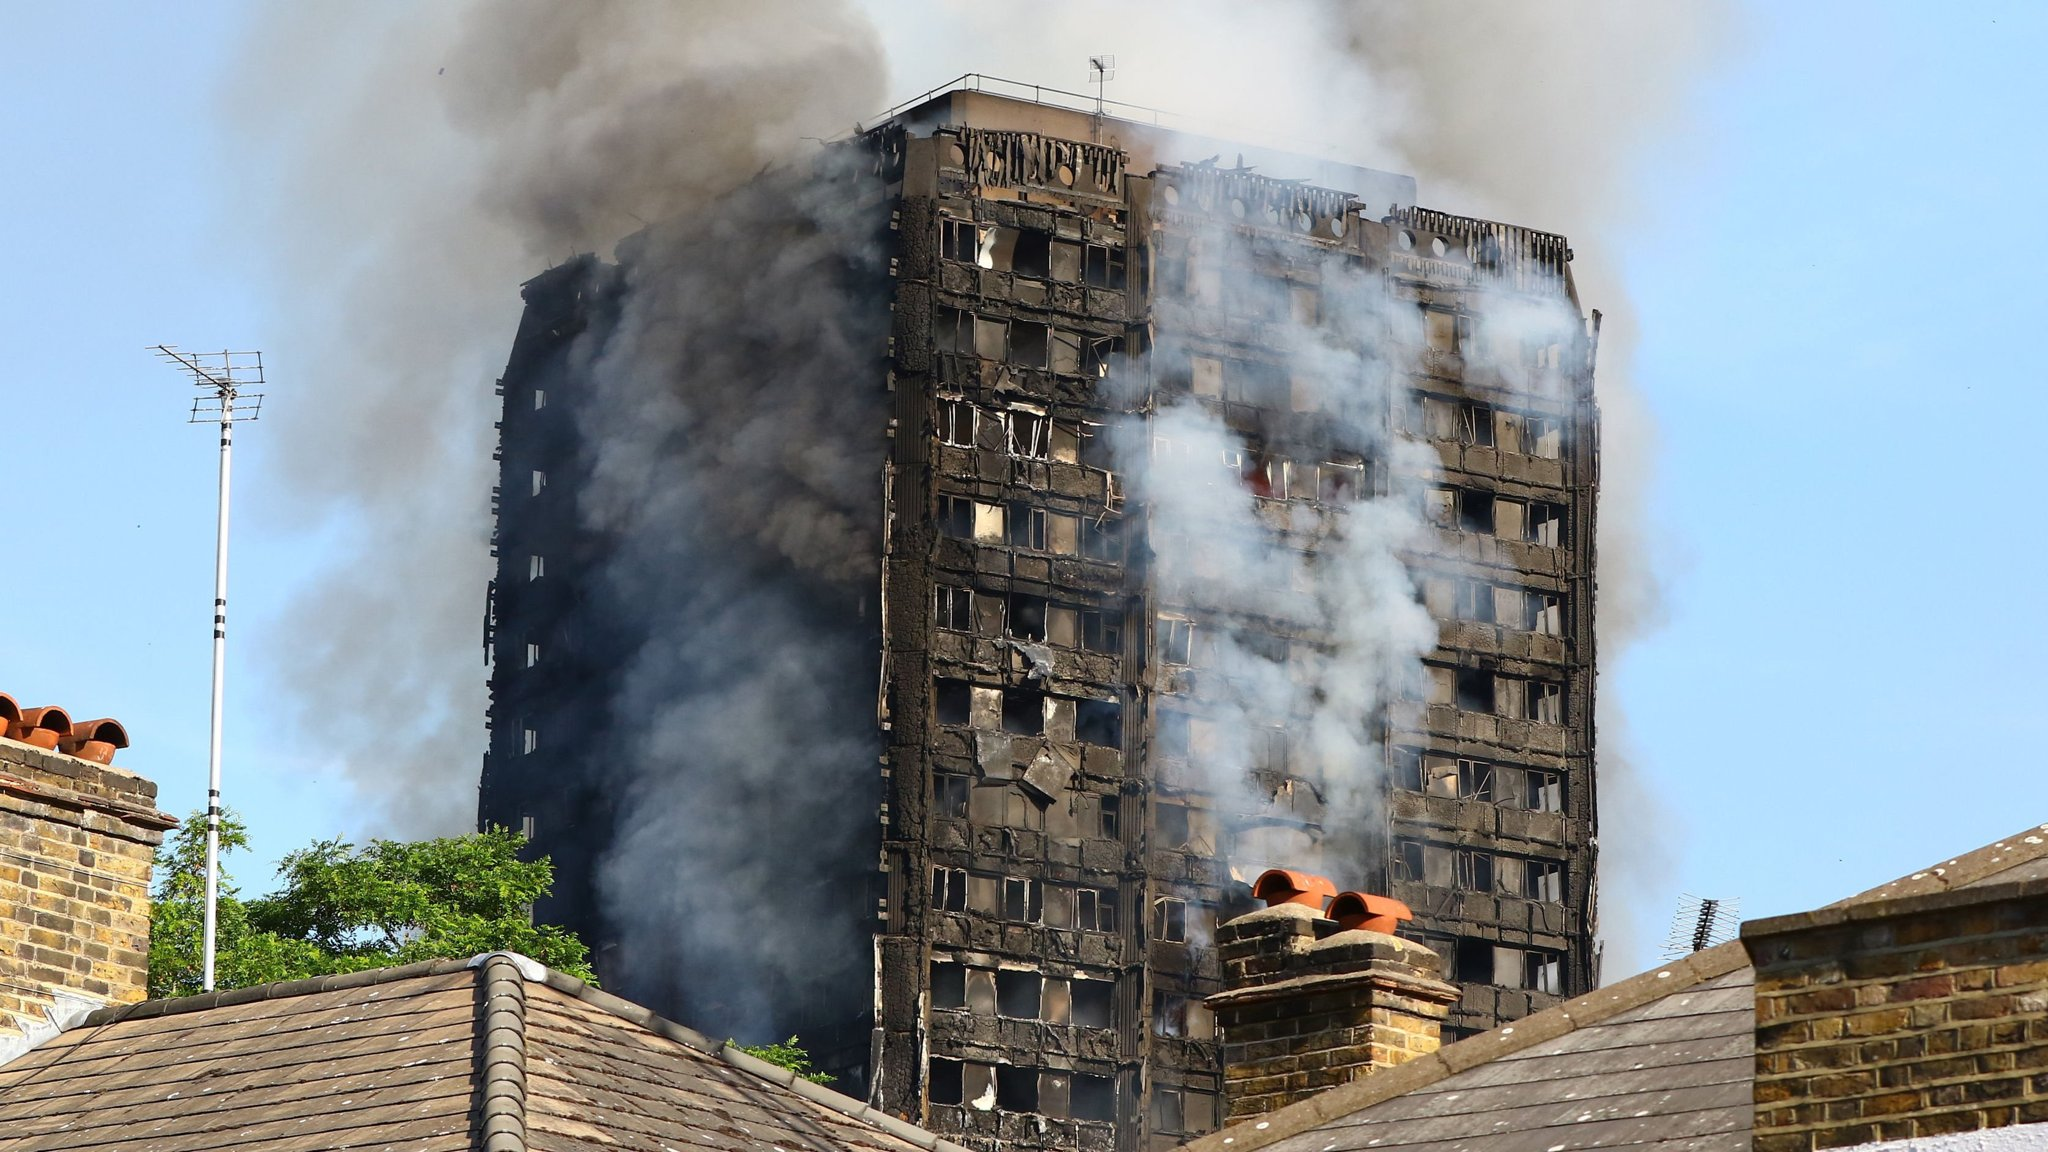 Arconic sale founders as Grenfell liabilities loom